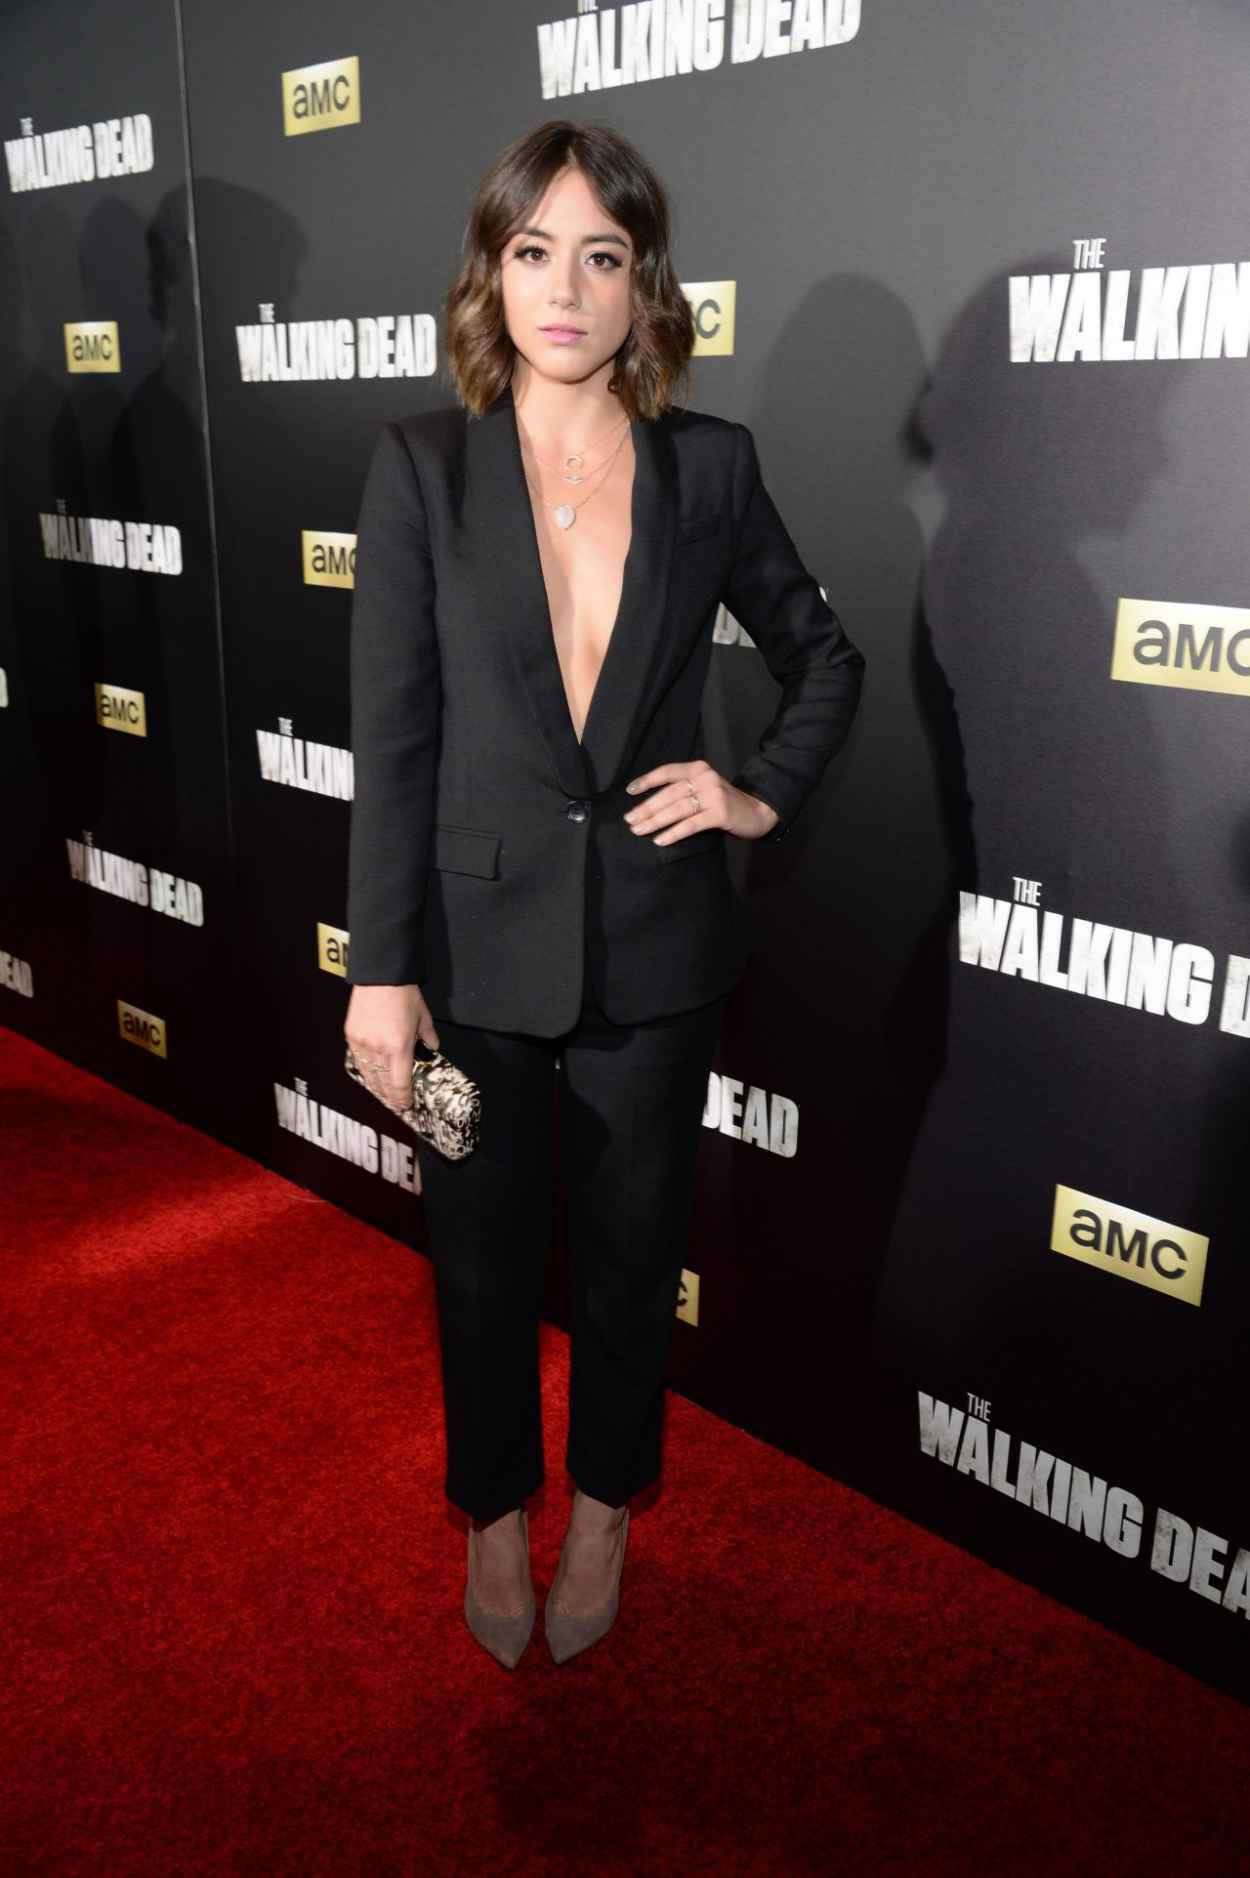 Chloe Bennet - AMCs The Walking Dead Season 6 Fan Premiere Event in New York City-3